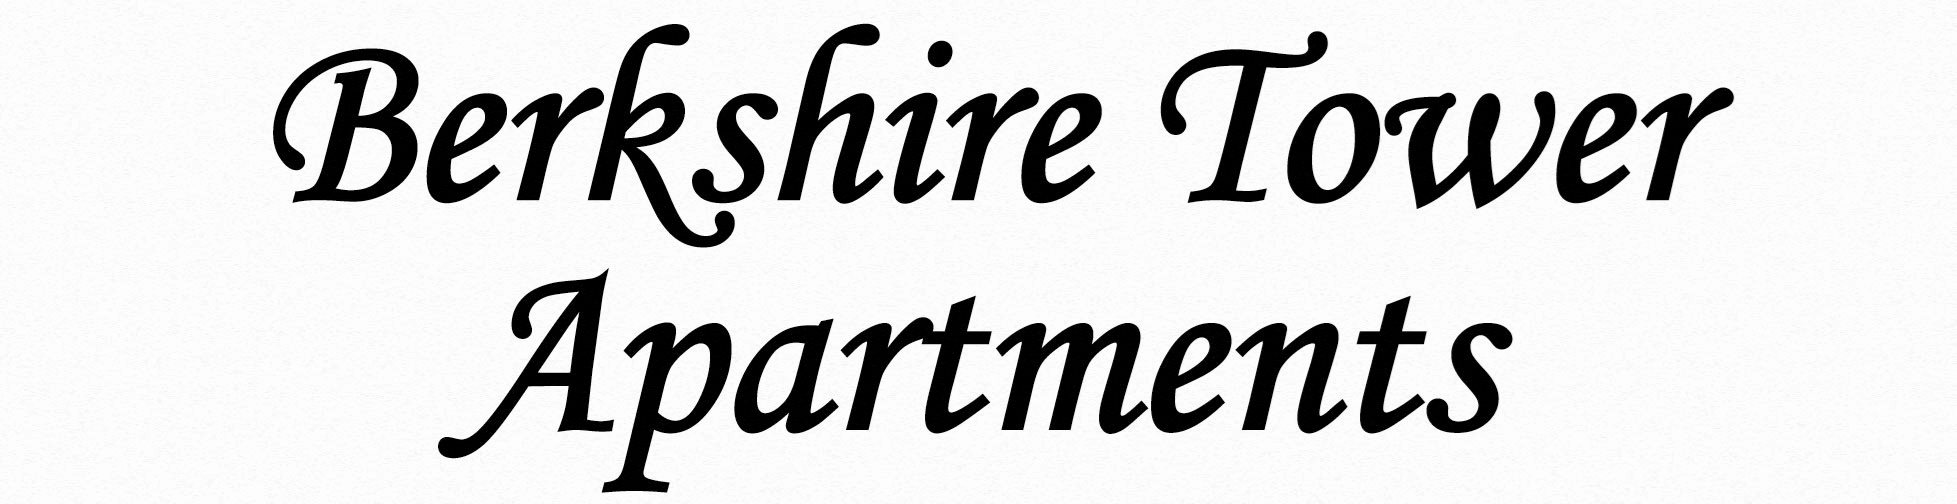 Berkshire Tower Apartments - Best Apartments in Reading, PA | Berkshire Tower Apartments | Property Management, Inc.